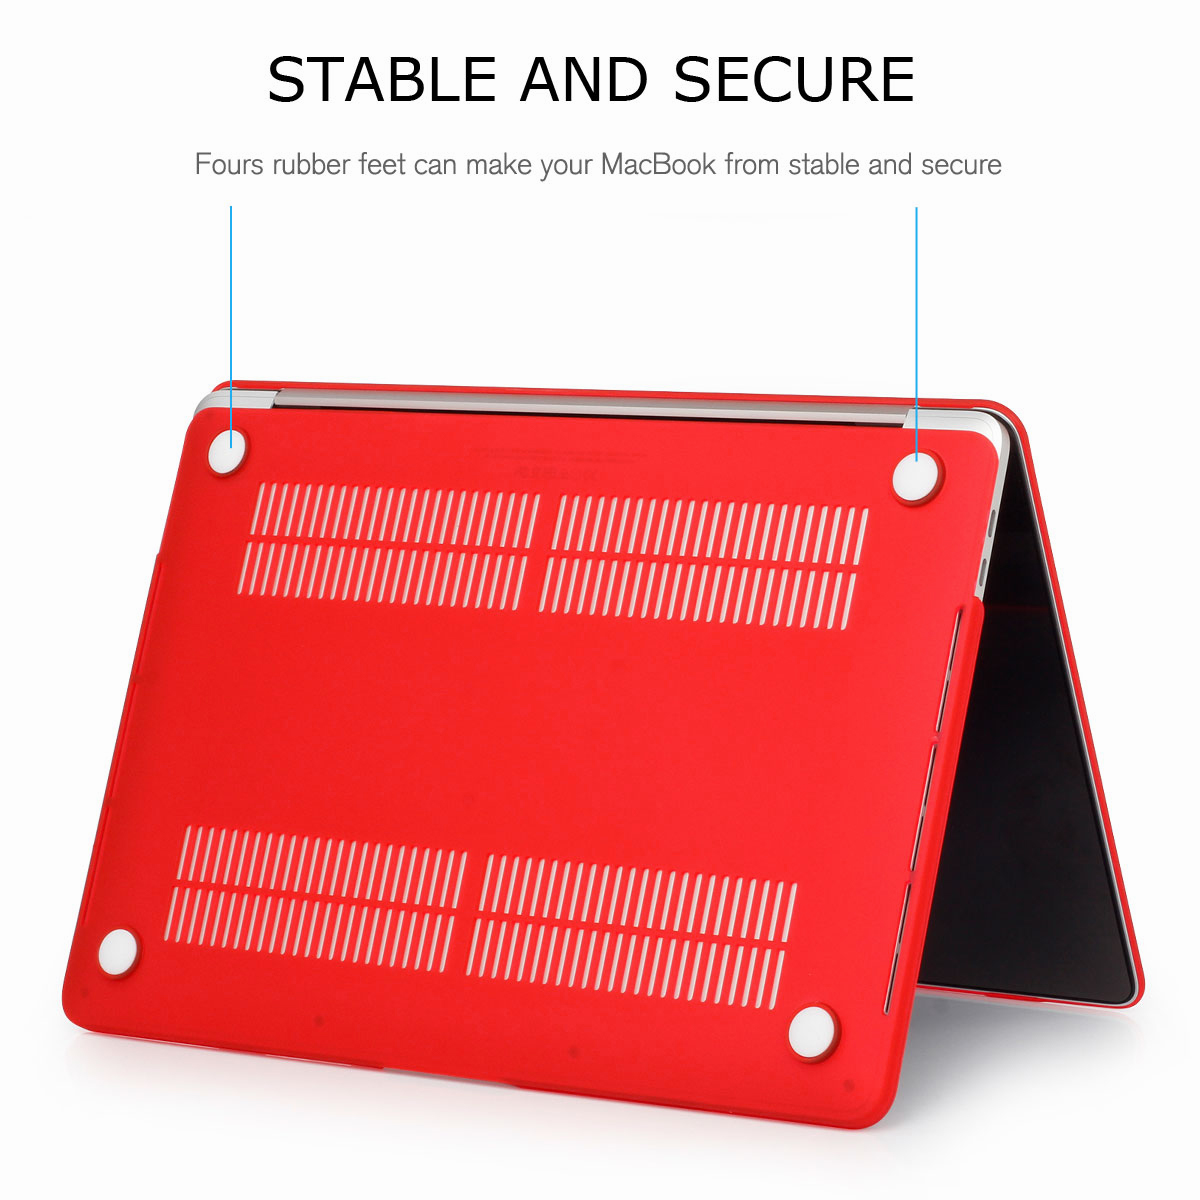 Shockproof-Rubberized-Matte-Hard-Case-Cover-For-Macbook-13-034-15-034-Inch-A1286-A1278 thumbnail 35